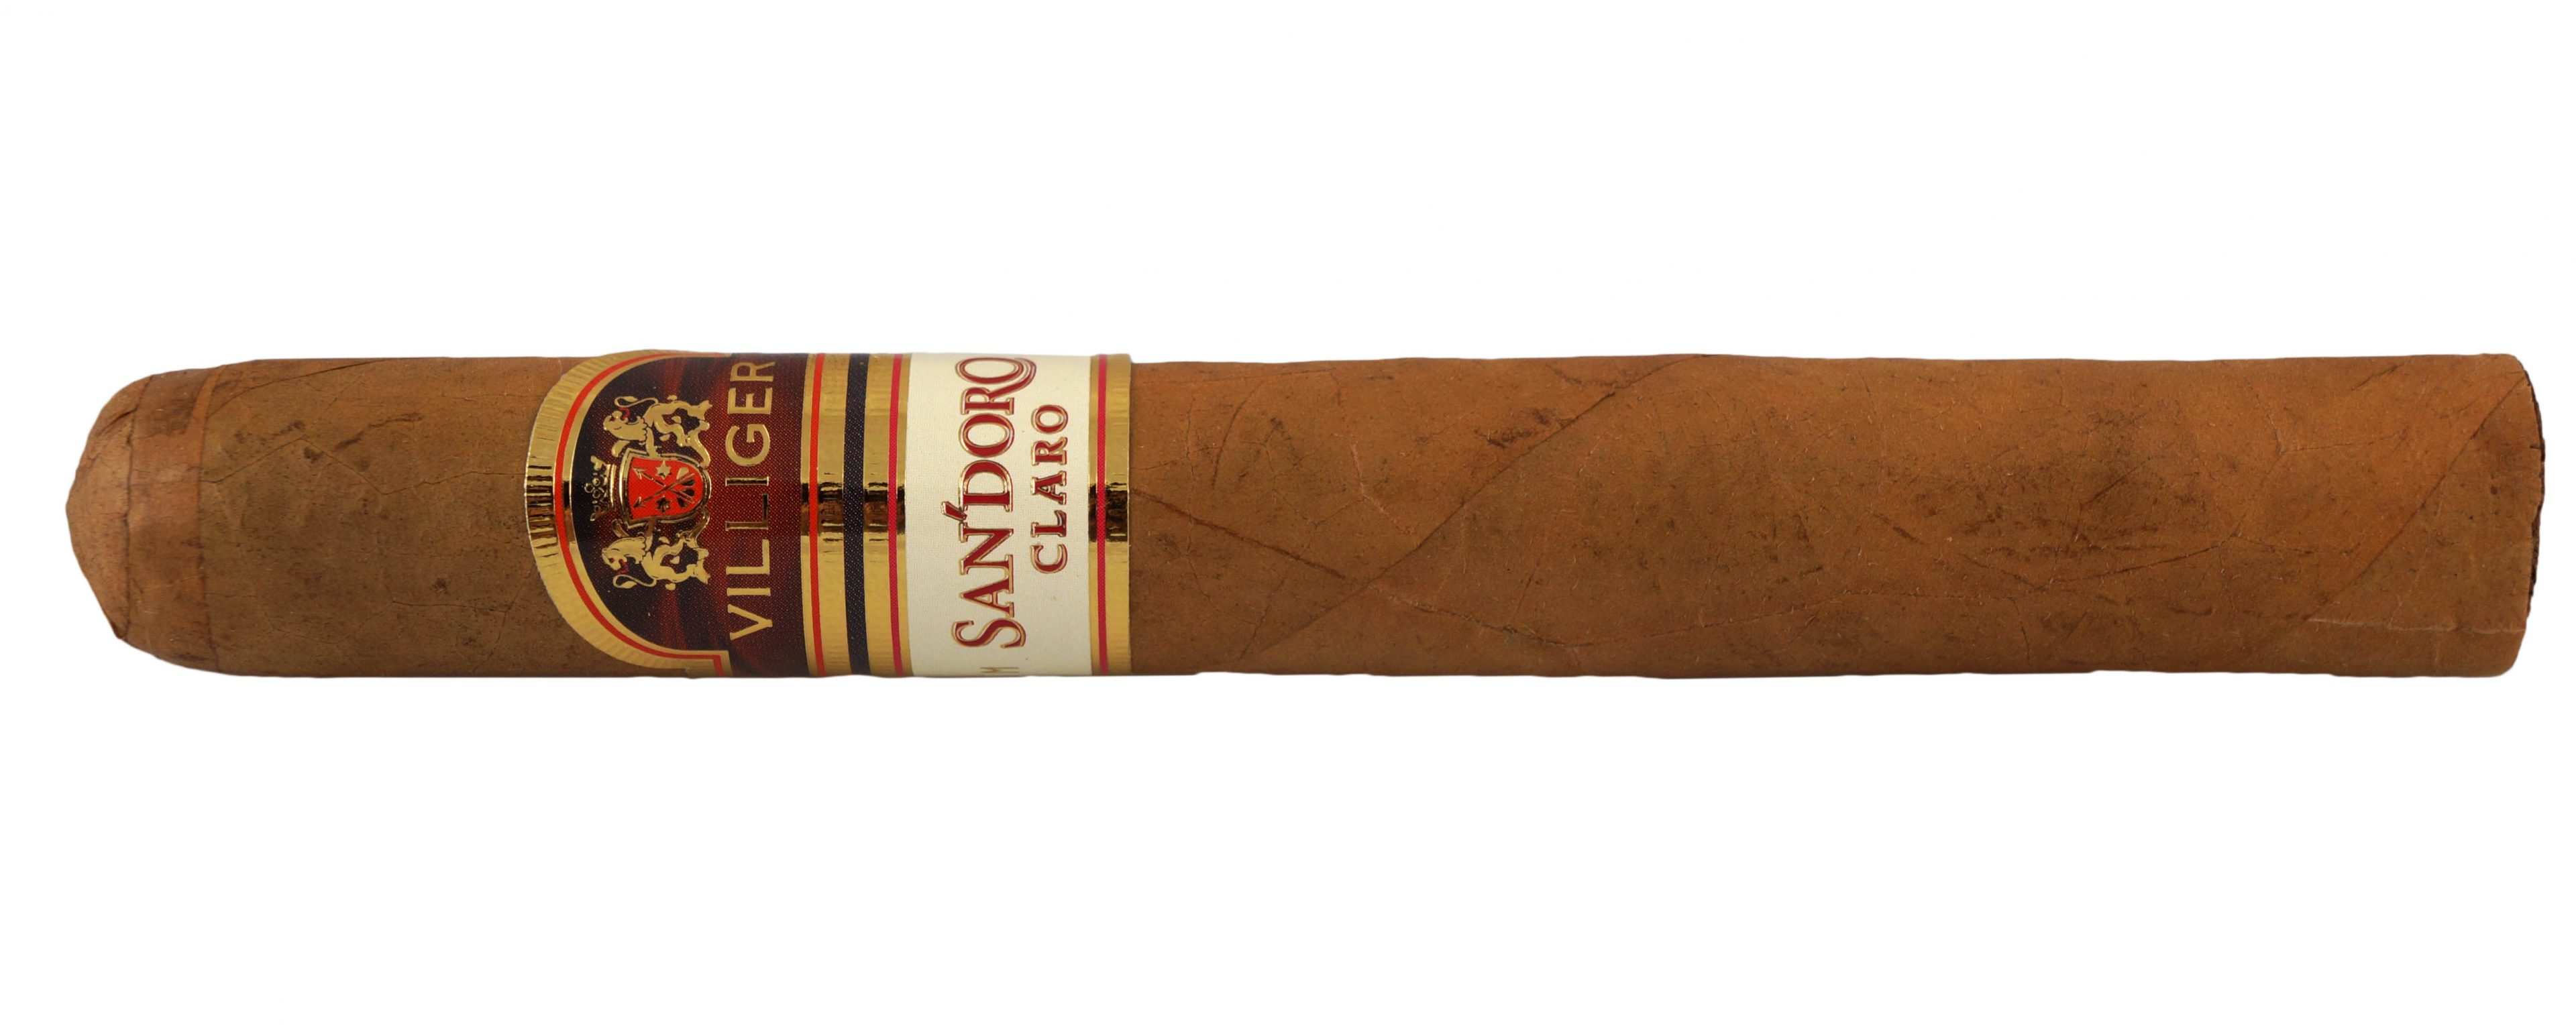 Blind Cigar Review: Villiger | San'Doro Claro Toro